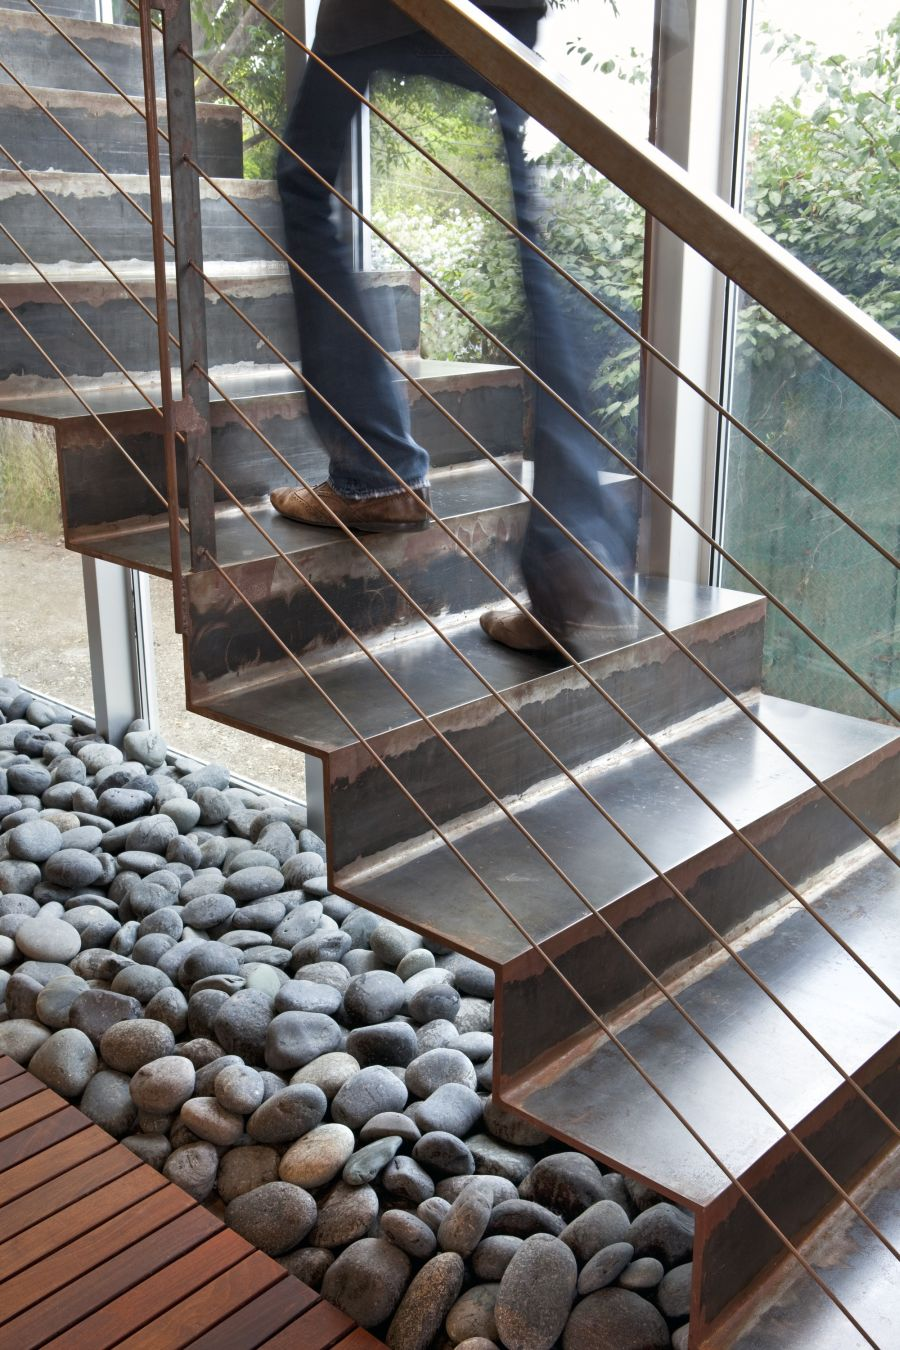 Smart use of river stone inside the house